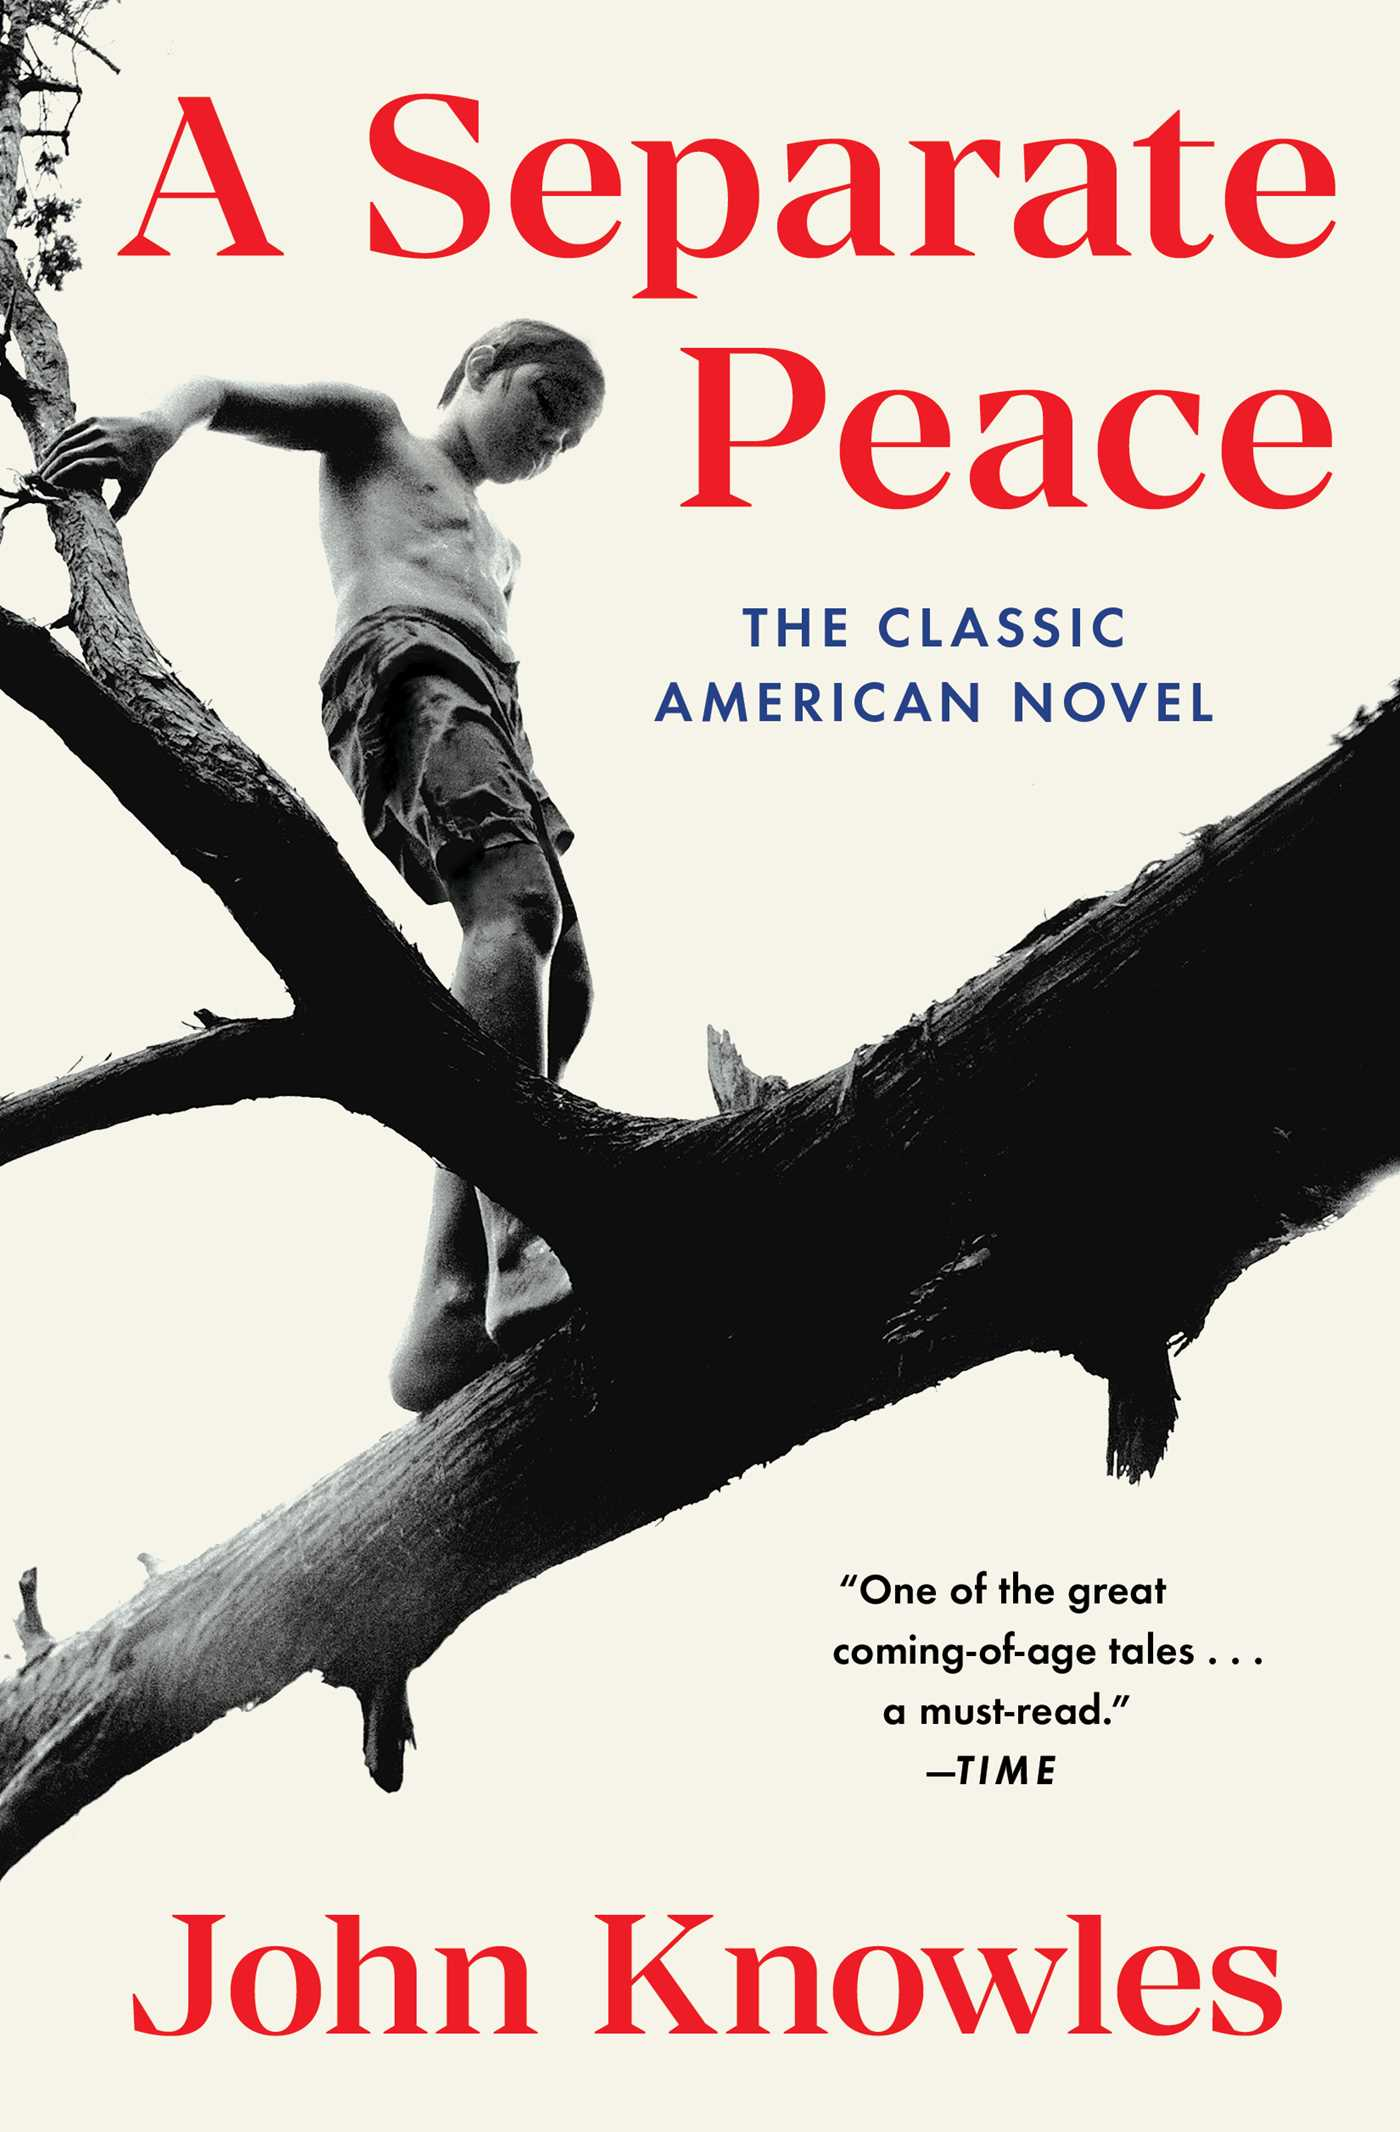 A-separate-peace-9780743253970_hr